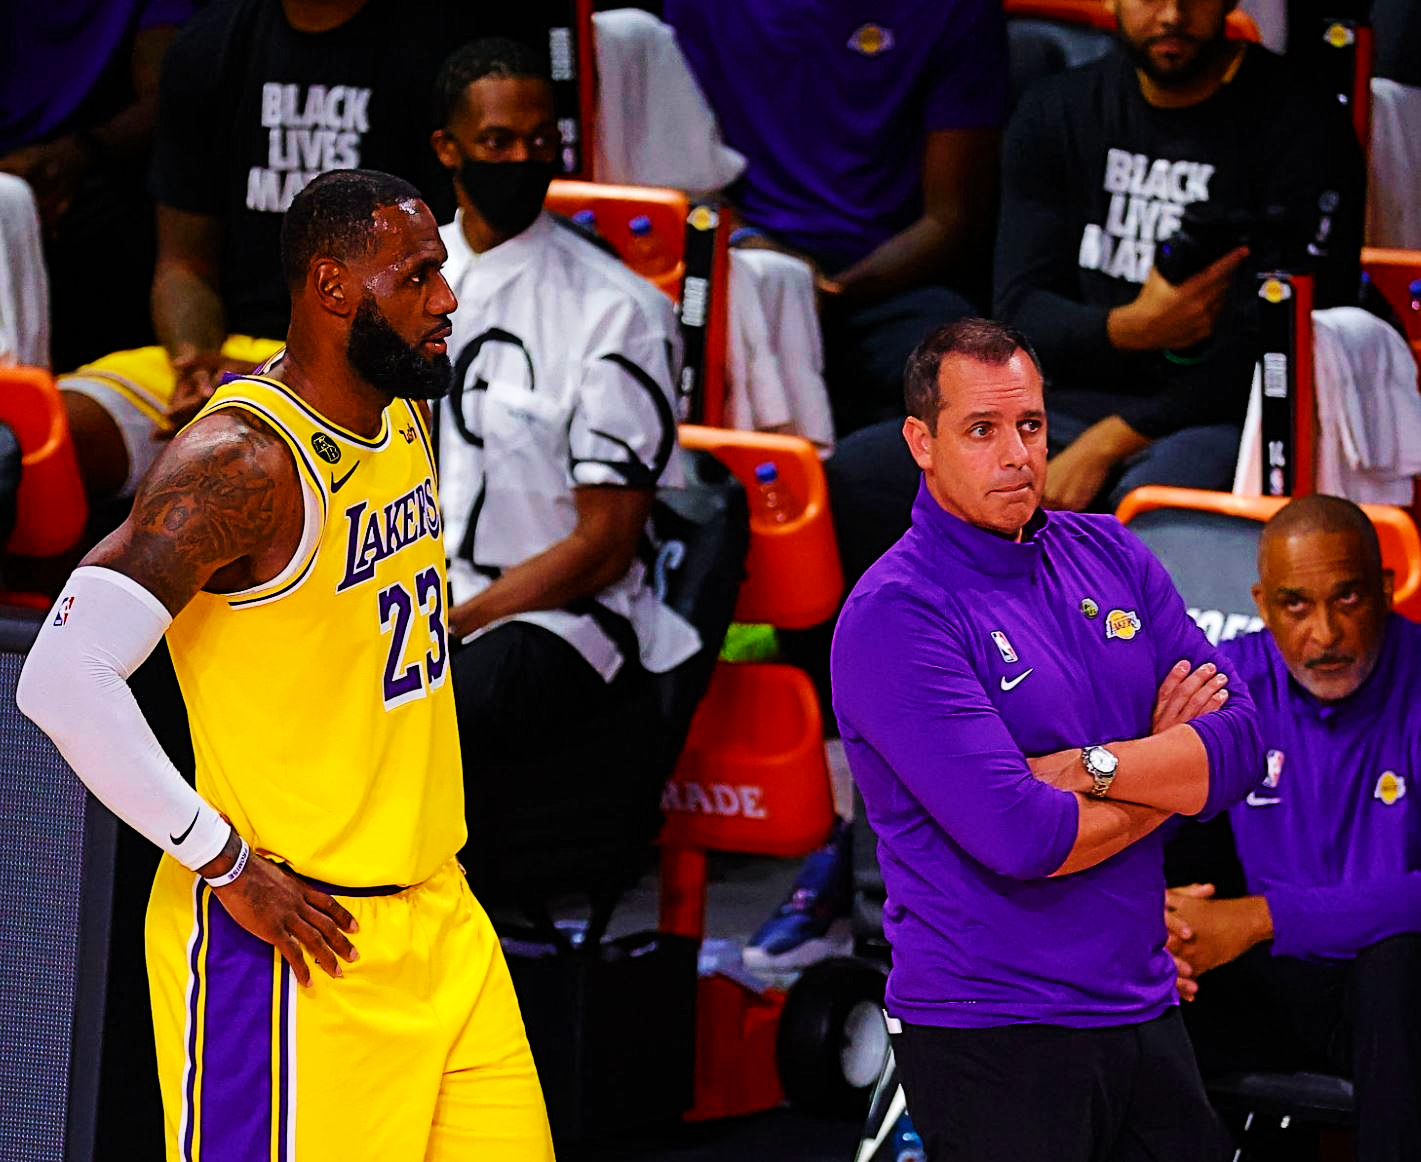 Lakers Can't Win NBA Championship Without Frank Vogel Making Changes